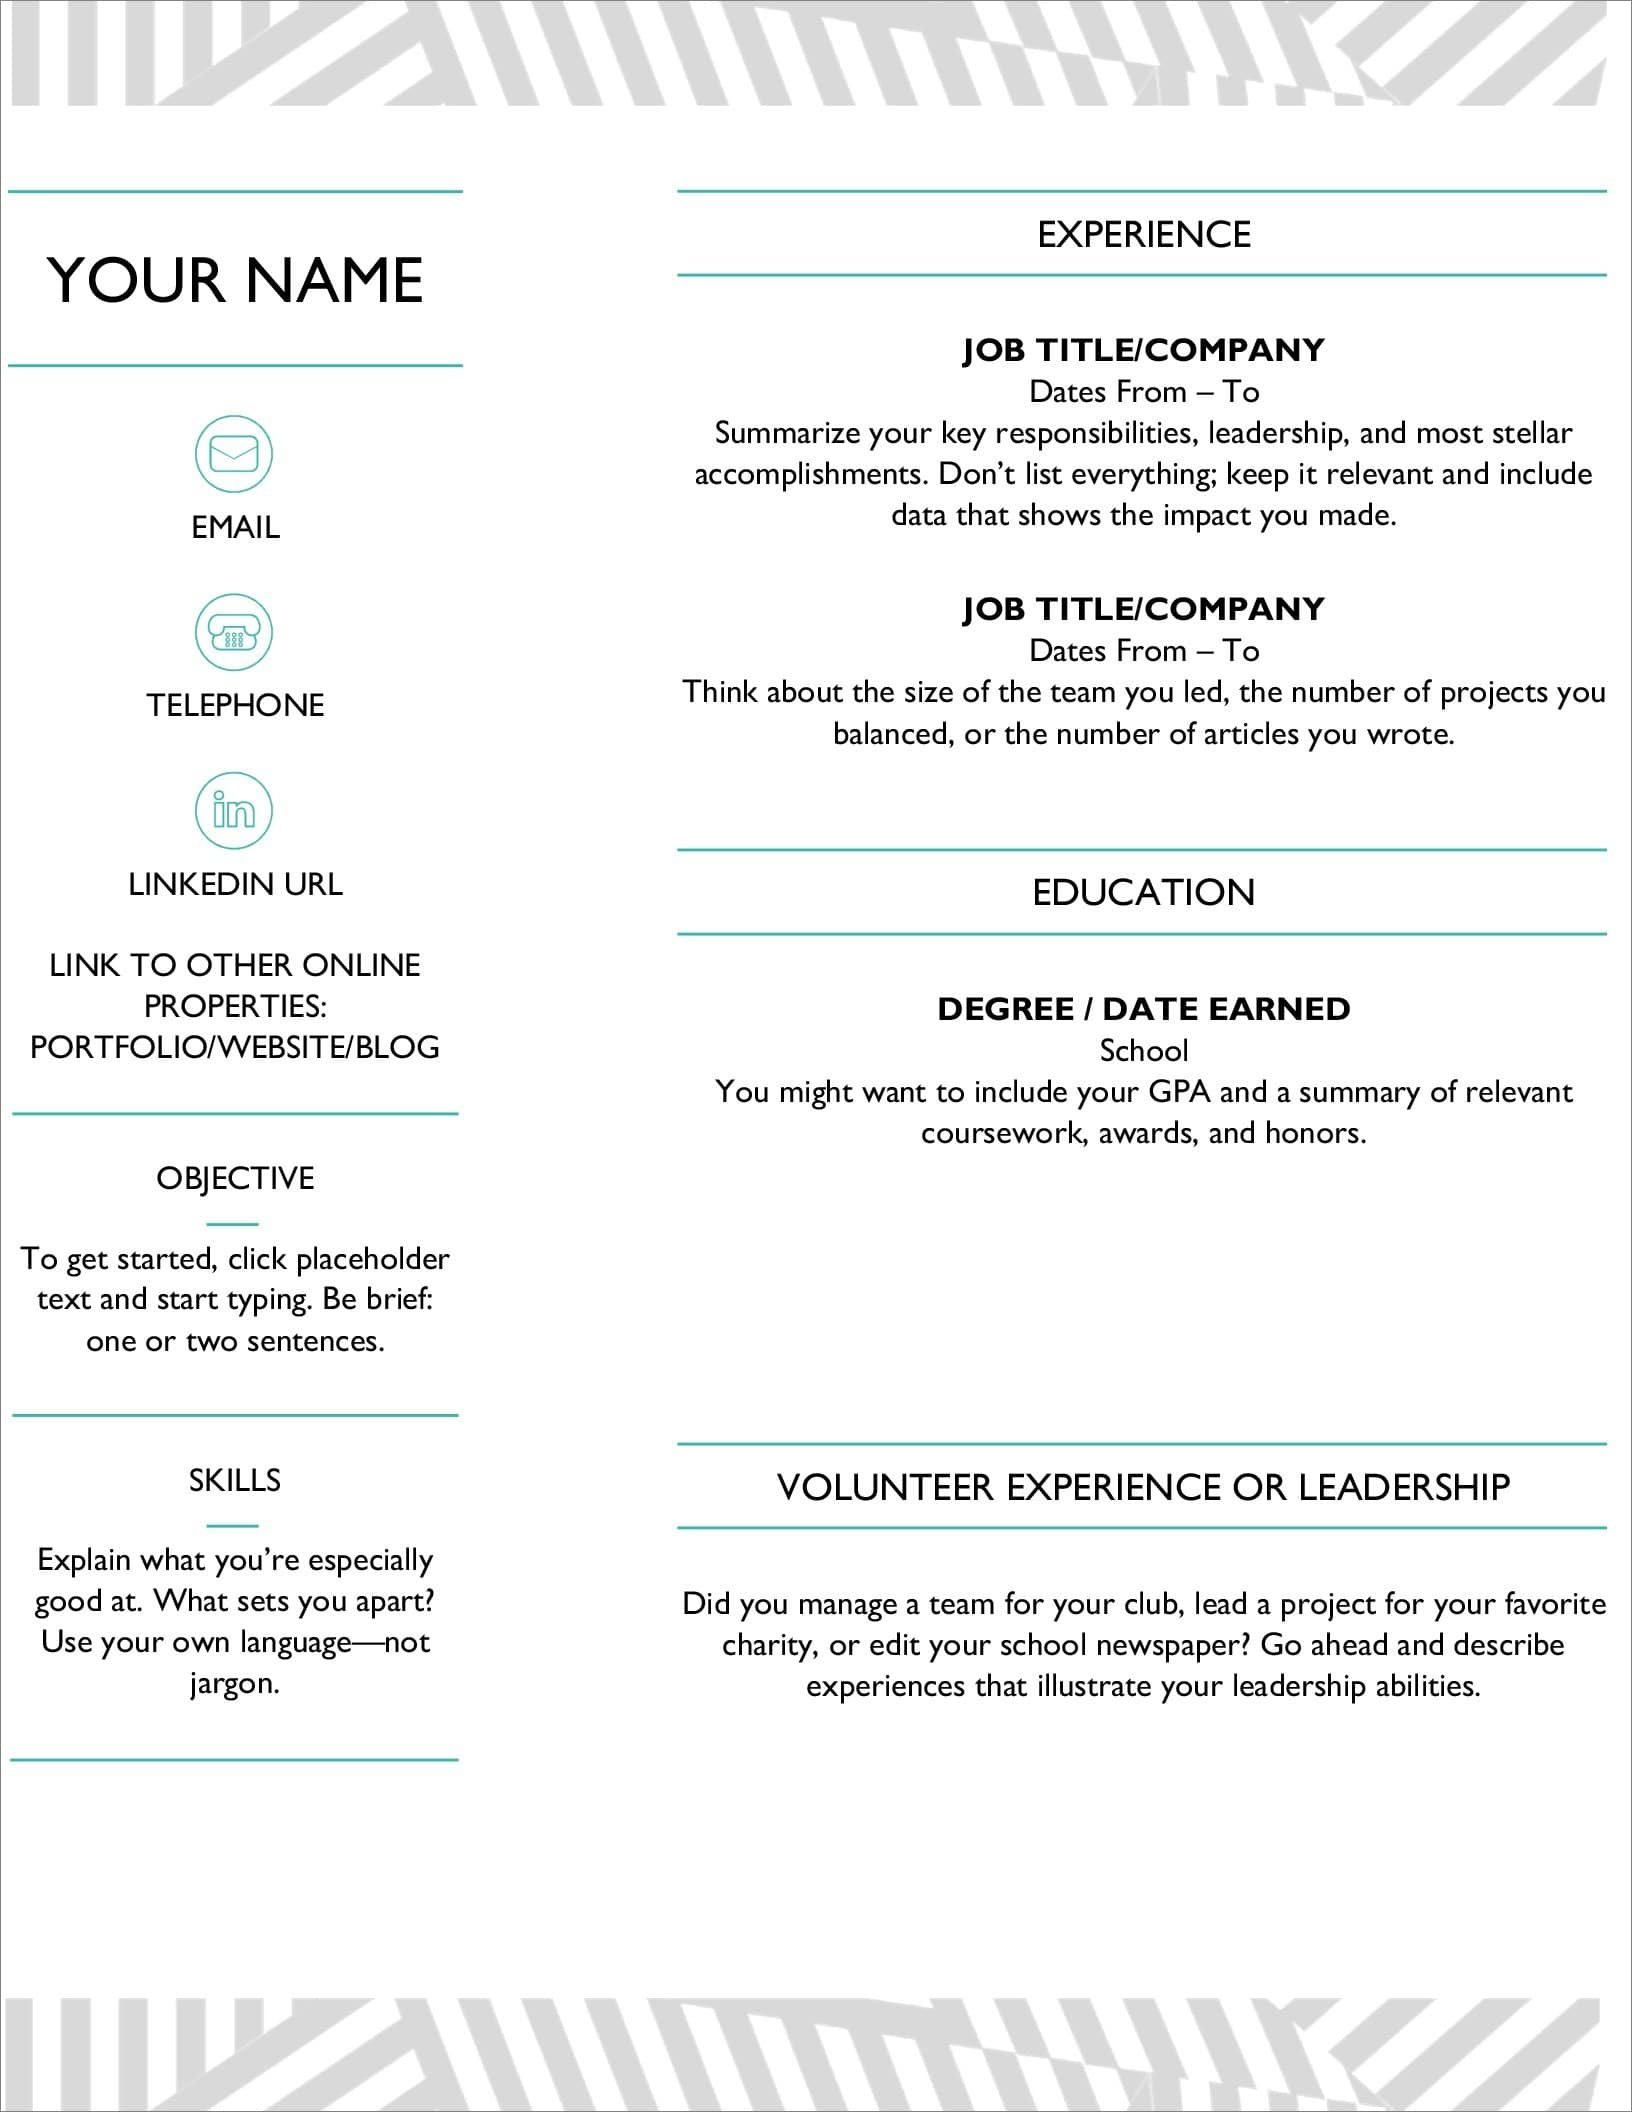 resume templates for microsoft word free with photo ms word23 welder duties and Resume Resume Templates For Microsoft Word With Photo